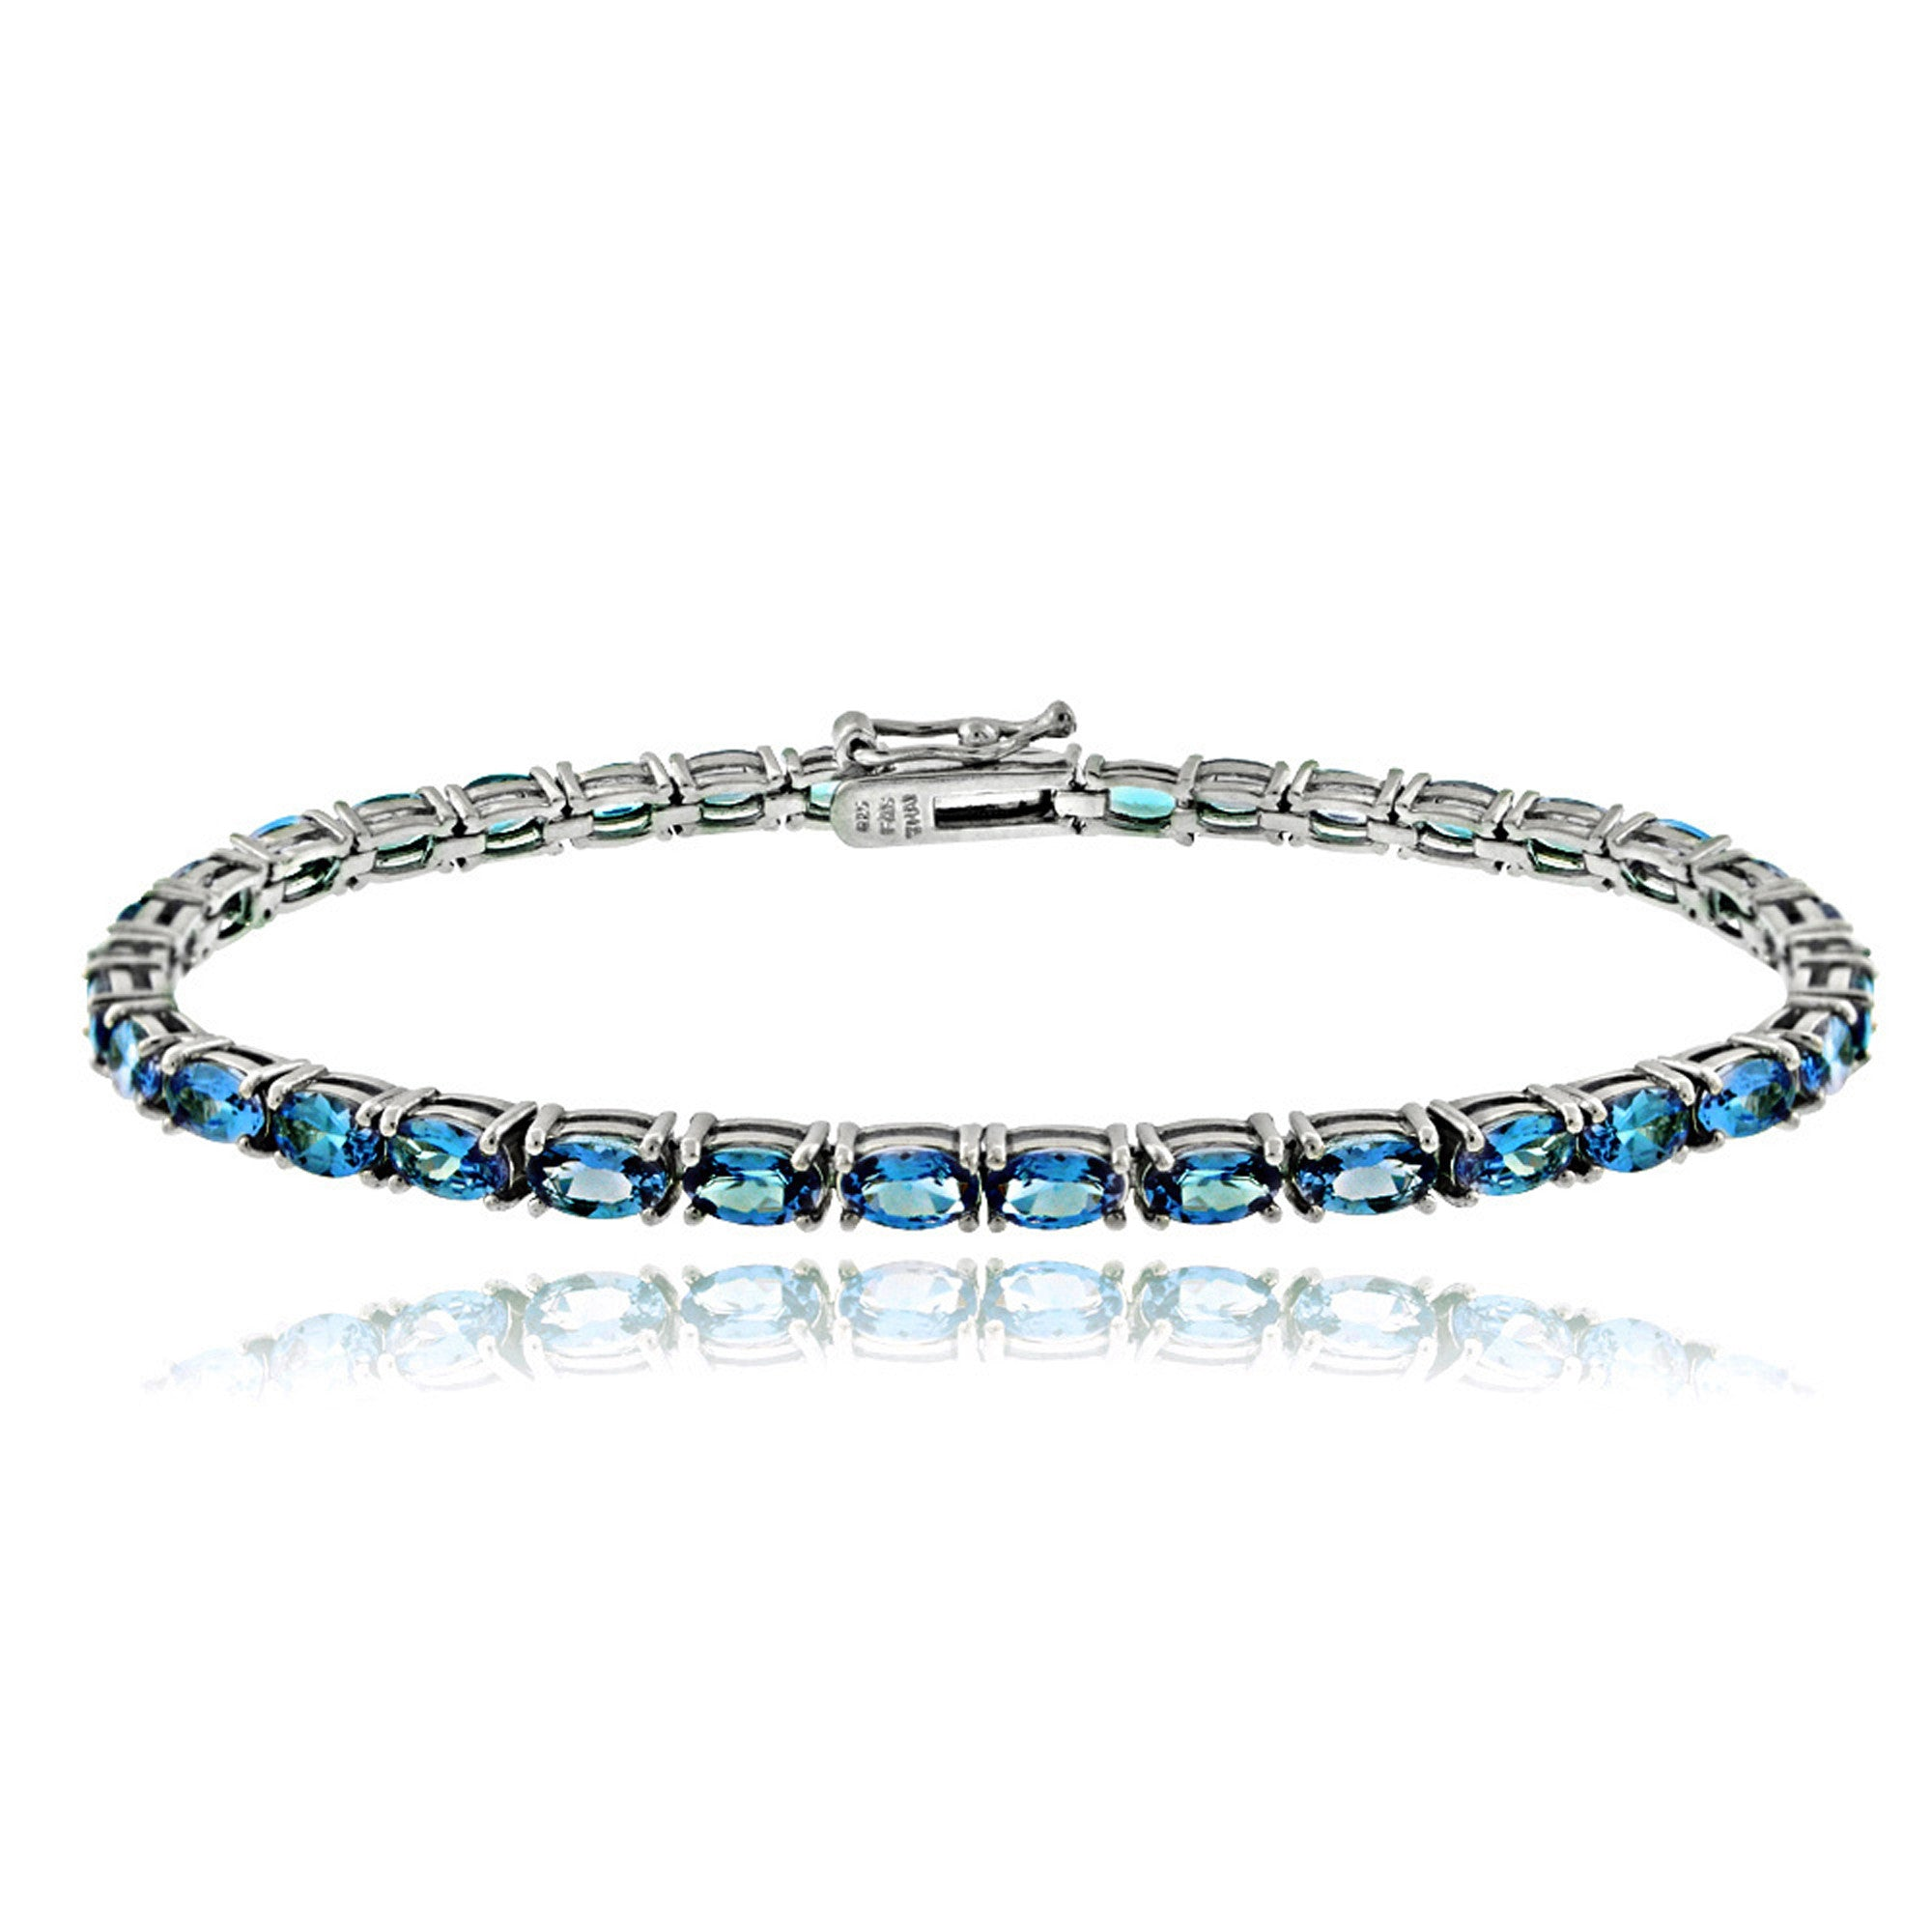 Birthstone Tennis Bracelet With CZ & Gem Accents in Sterling Silver - March Aquamarine